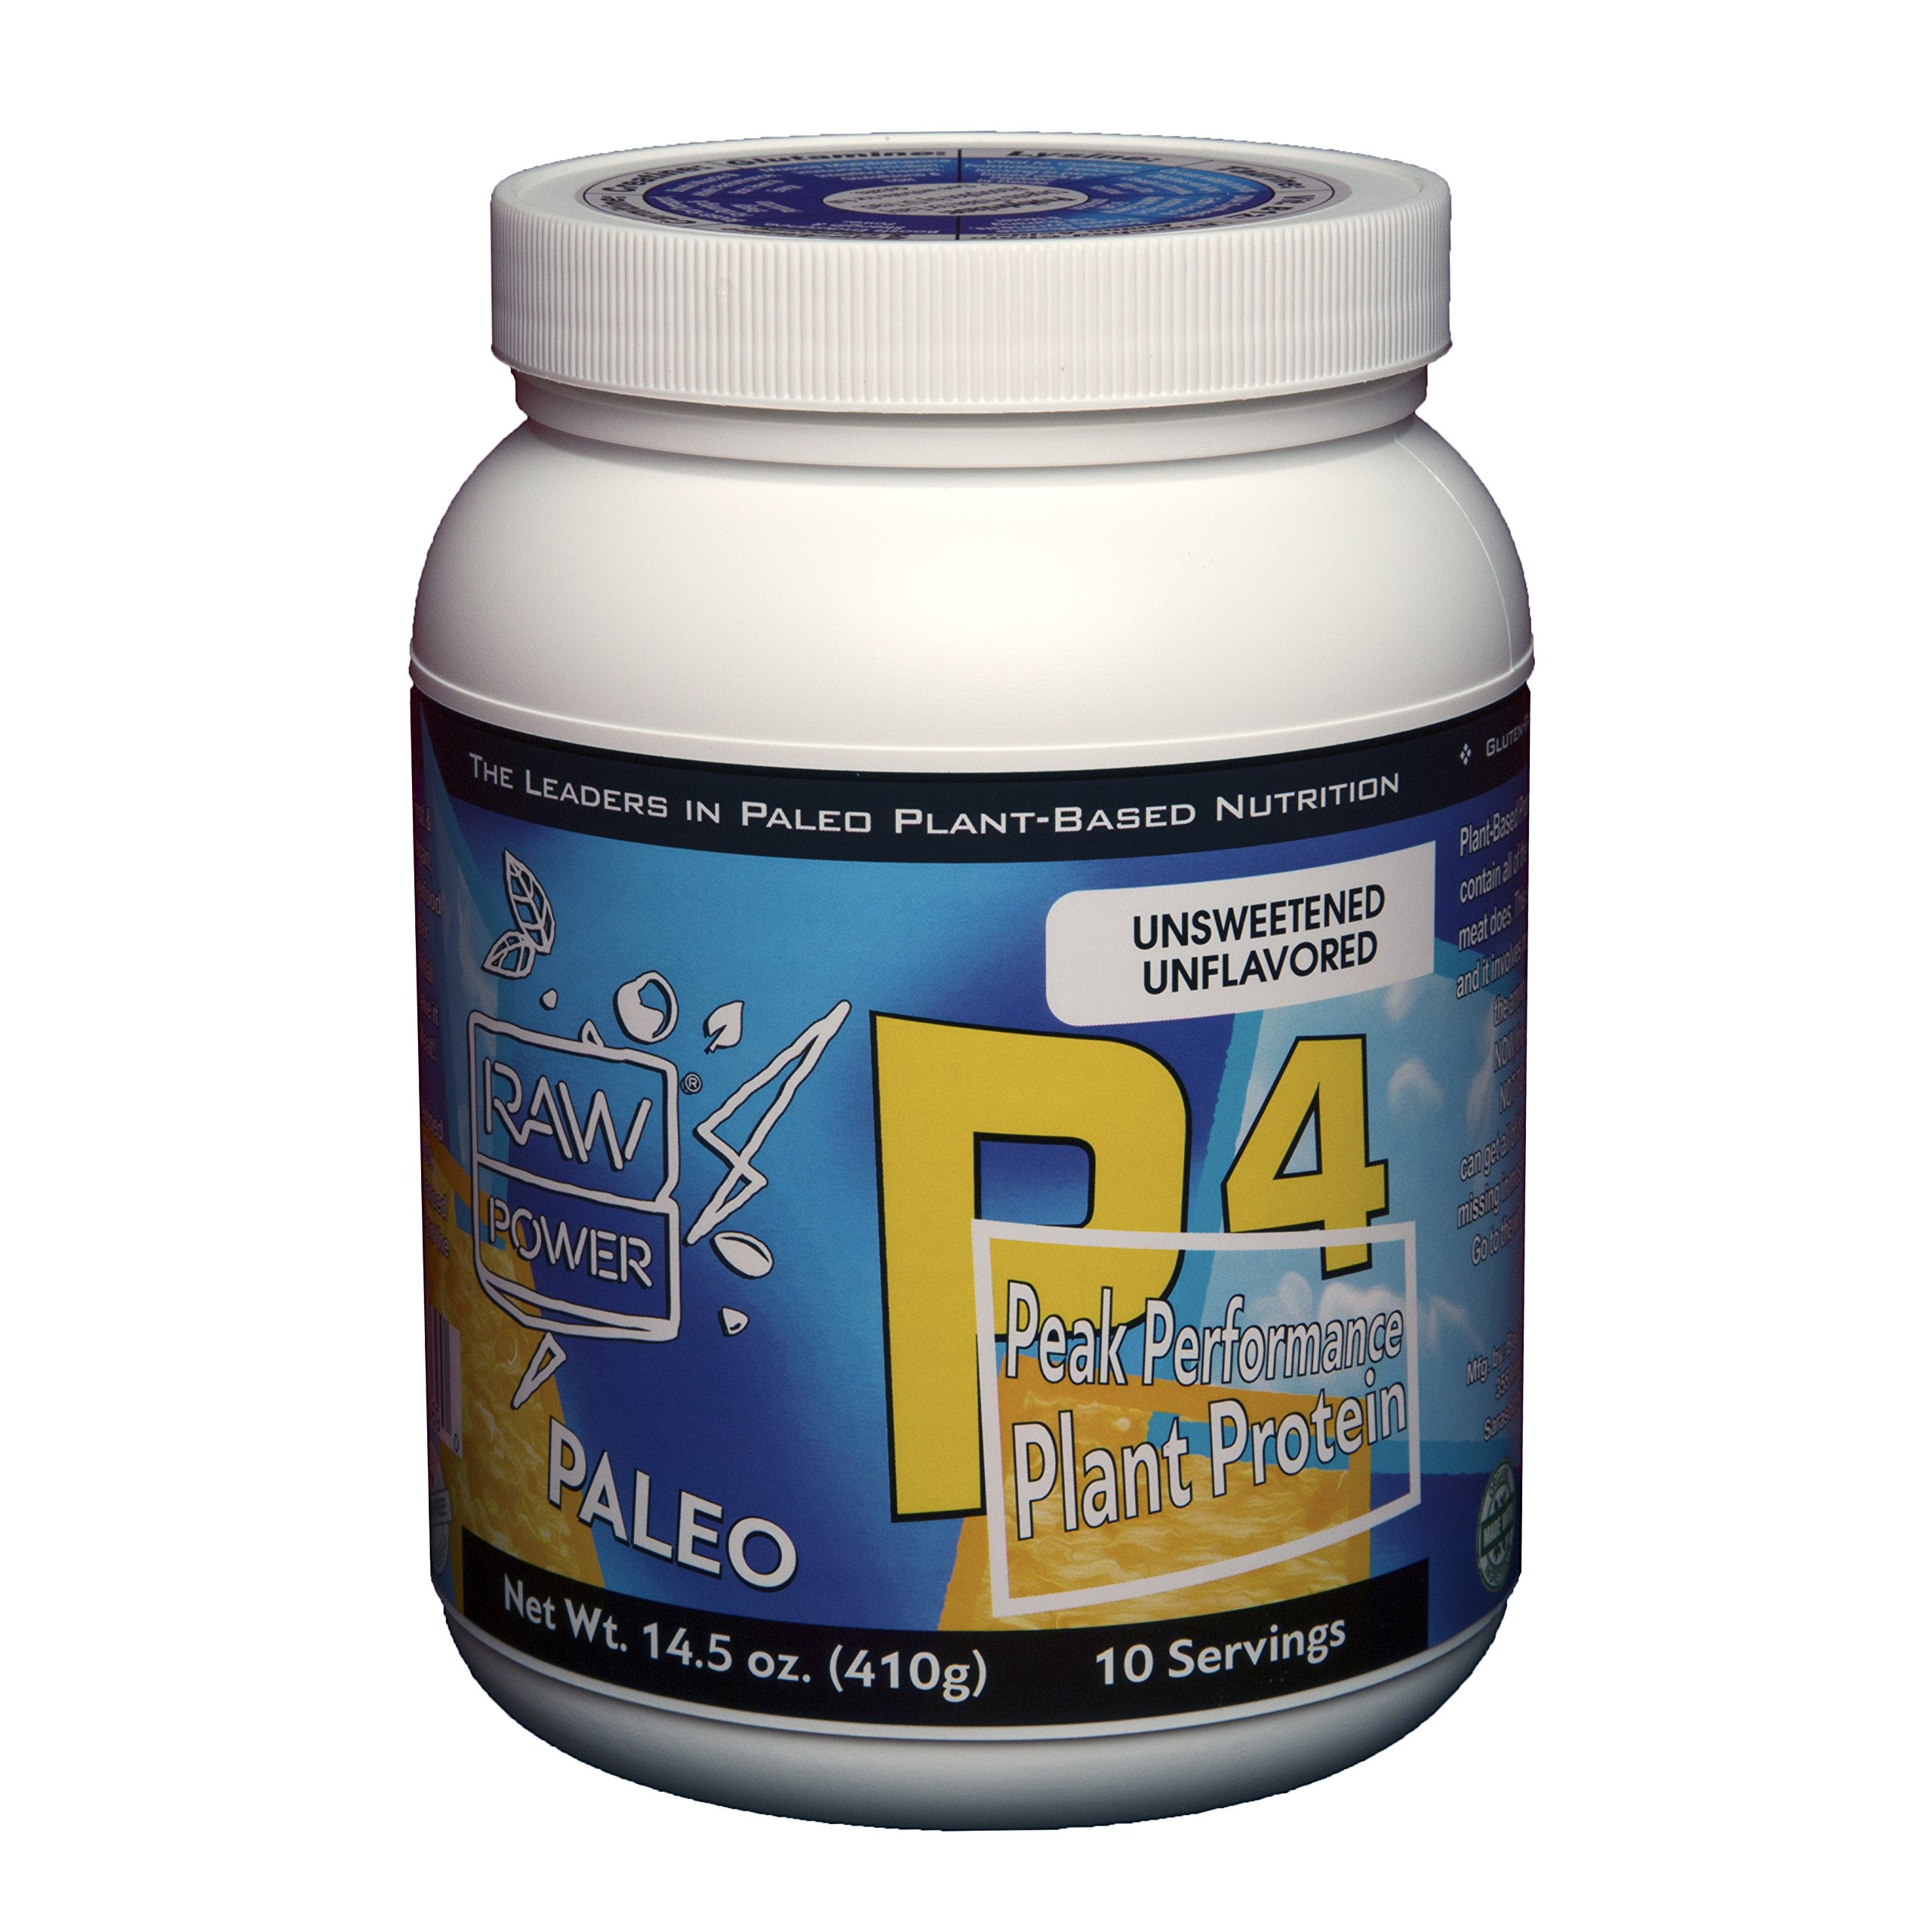 The Best Protein Powder on The Planet: More Balanced & Complete Than Meat (But Vegan) Paleo Organic Pumpkin Seed Protein + 11 Vital Nutrients Lacking In Most Diets -10 Servs - Unsweetened Unflavored by Body Symphony